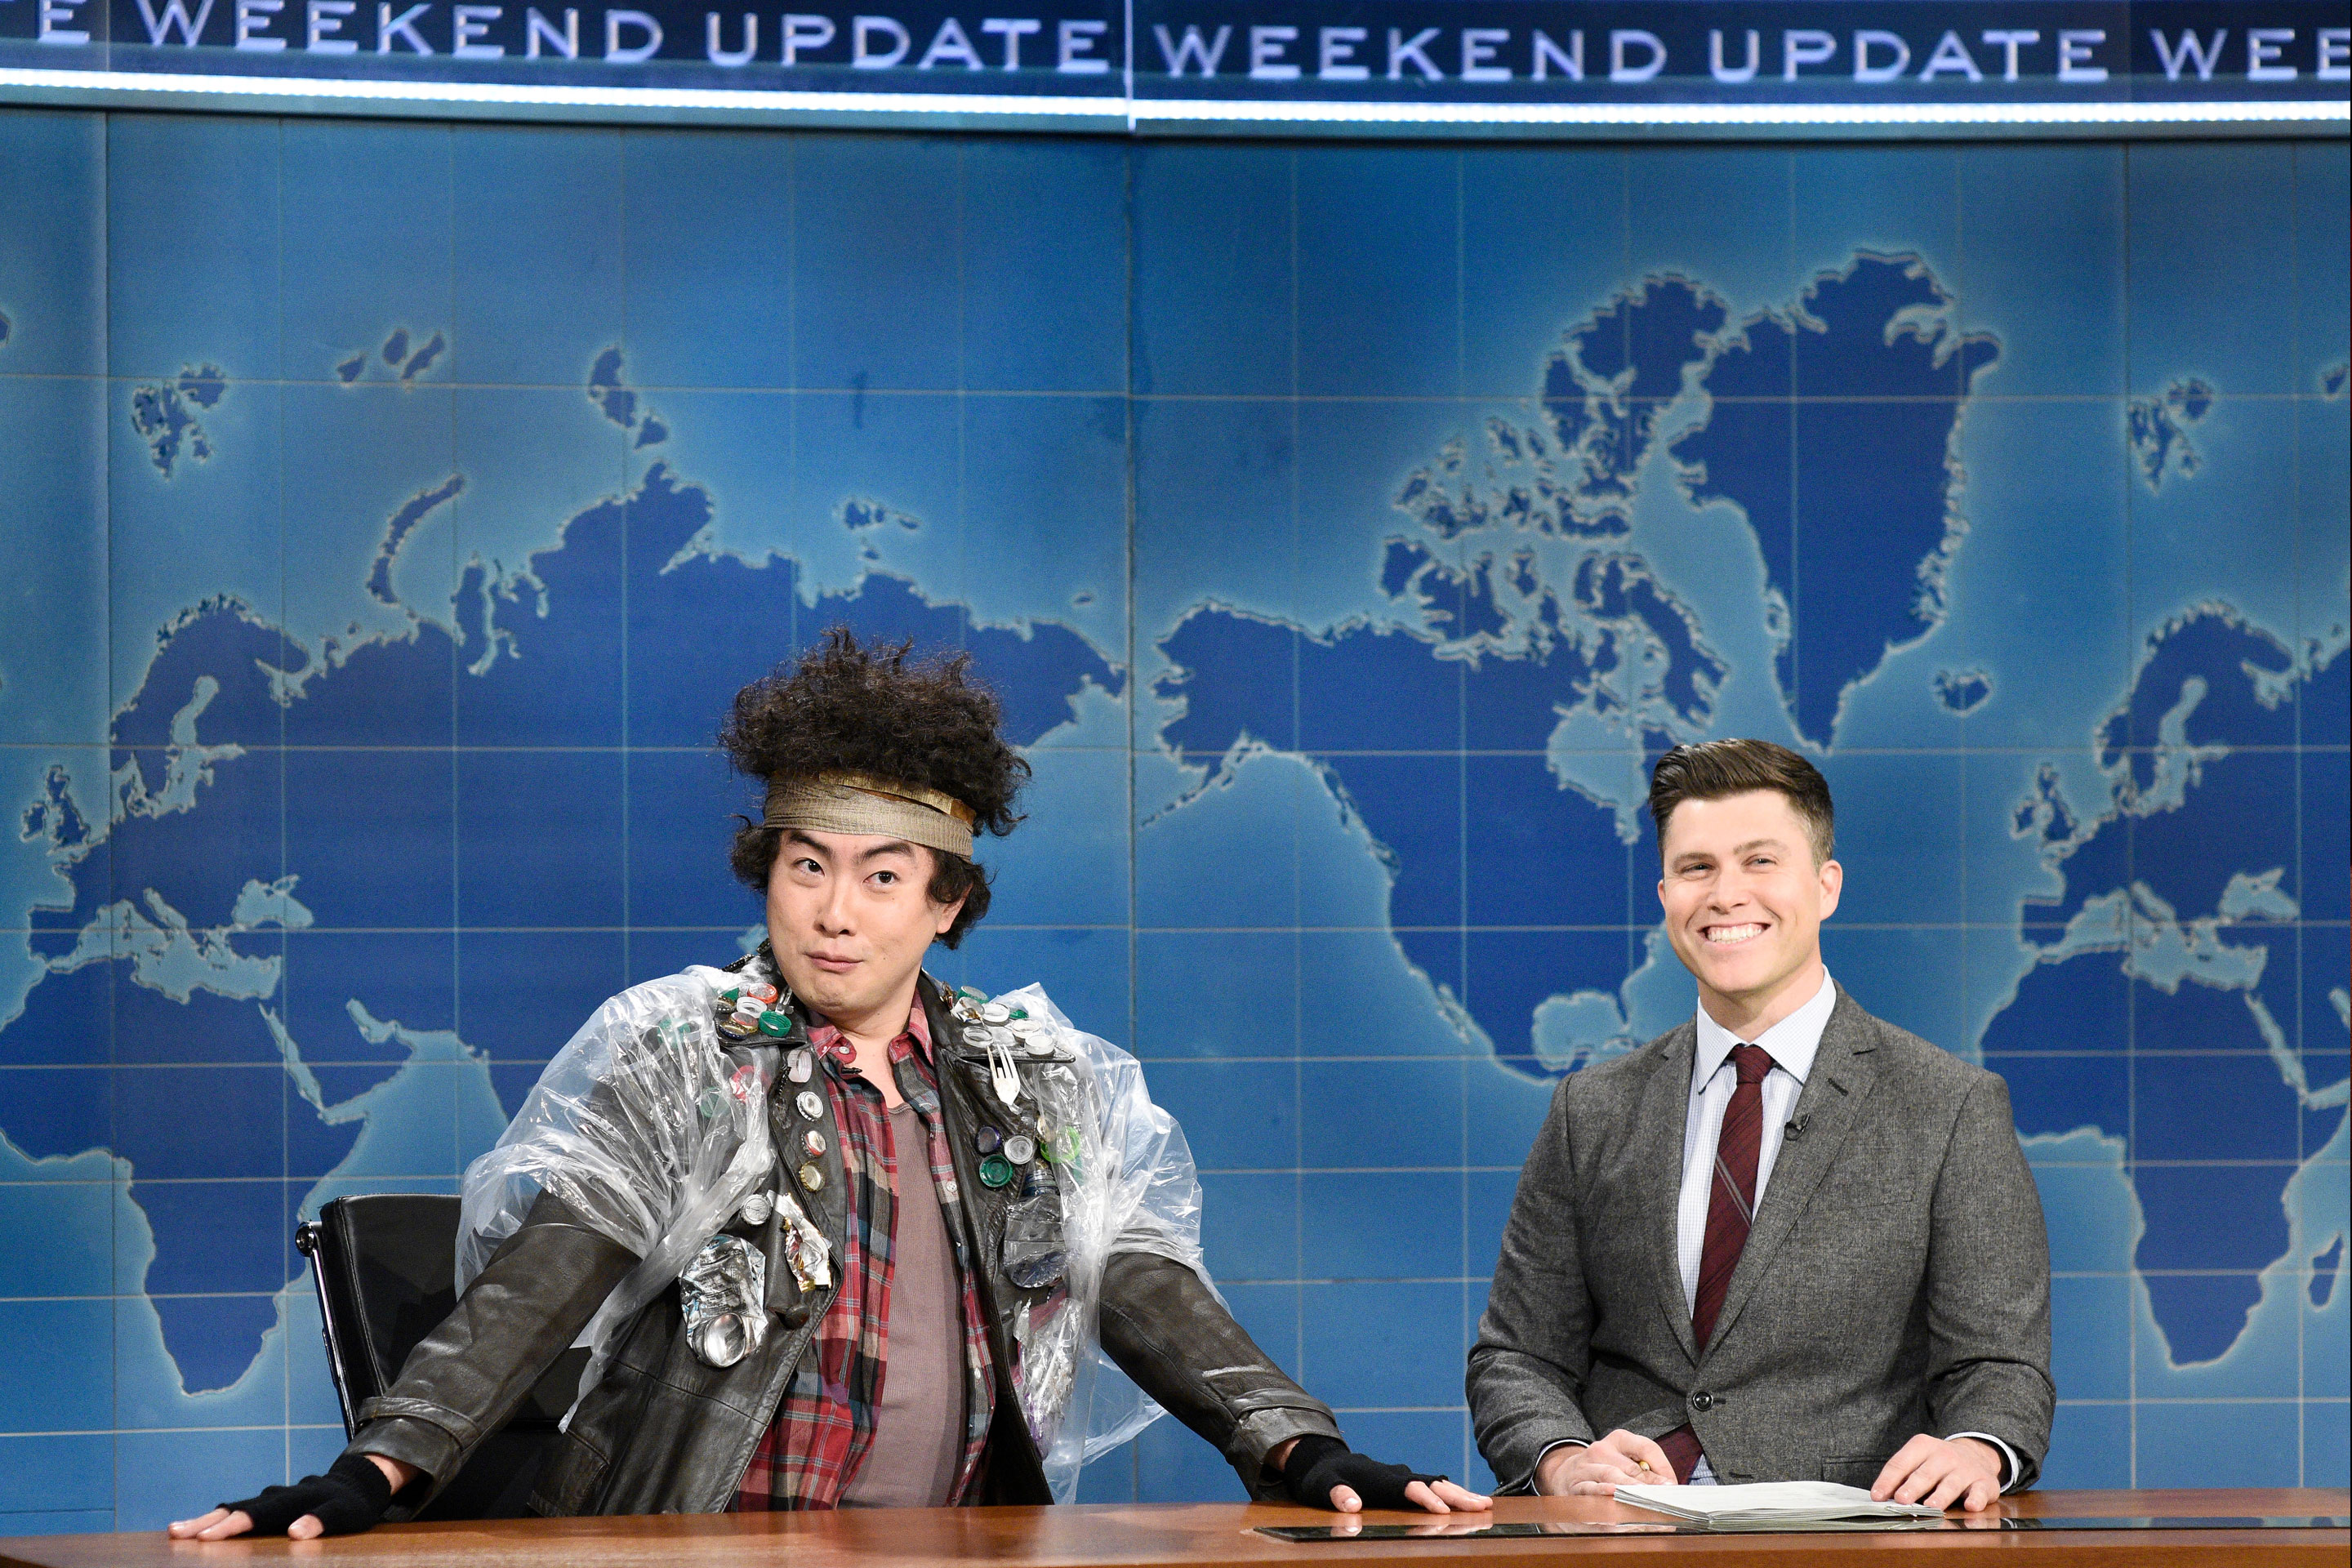 'SNL' will air this Saturday and observe social distancing guidelines